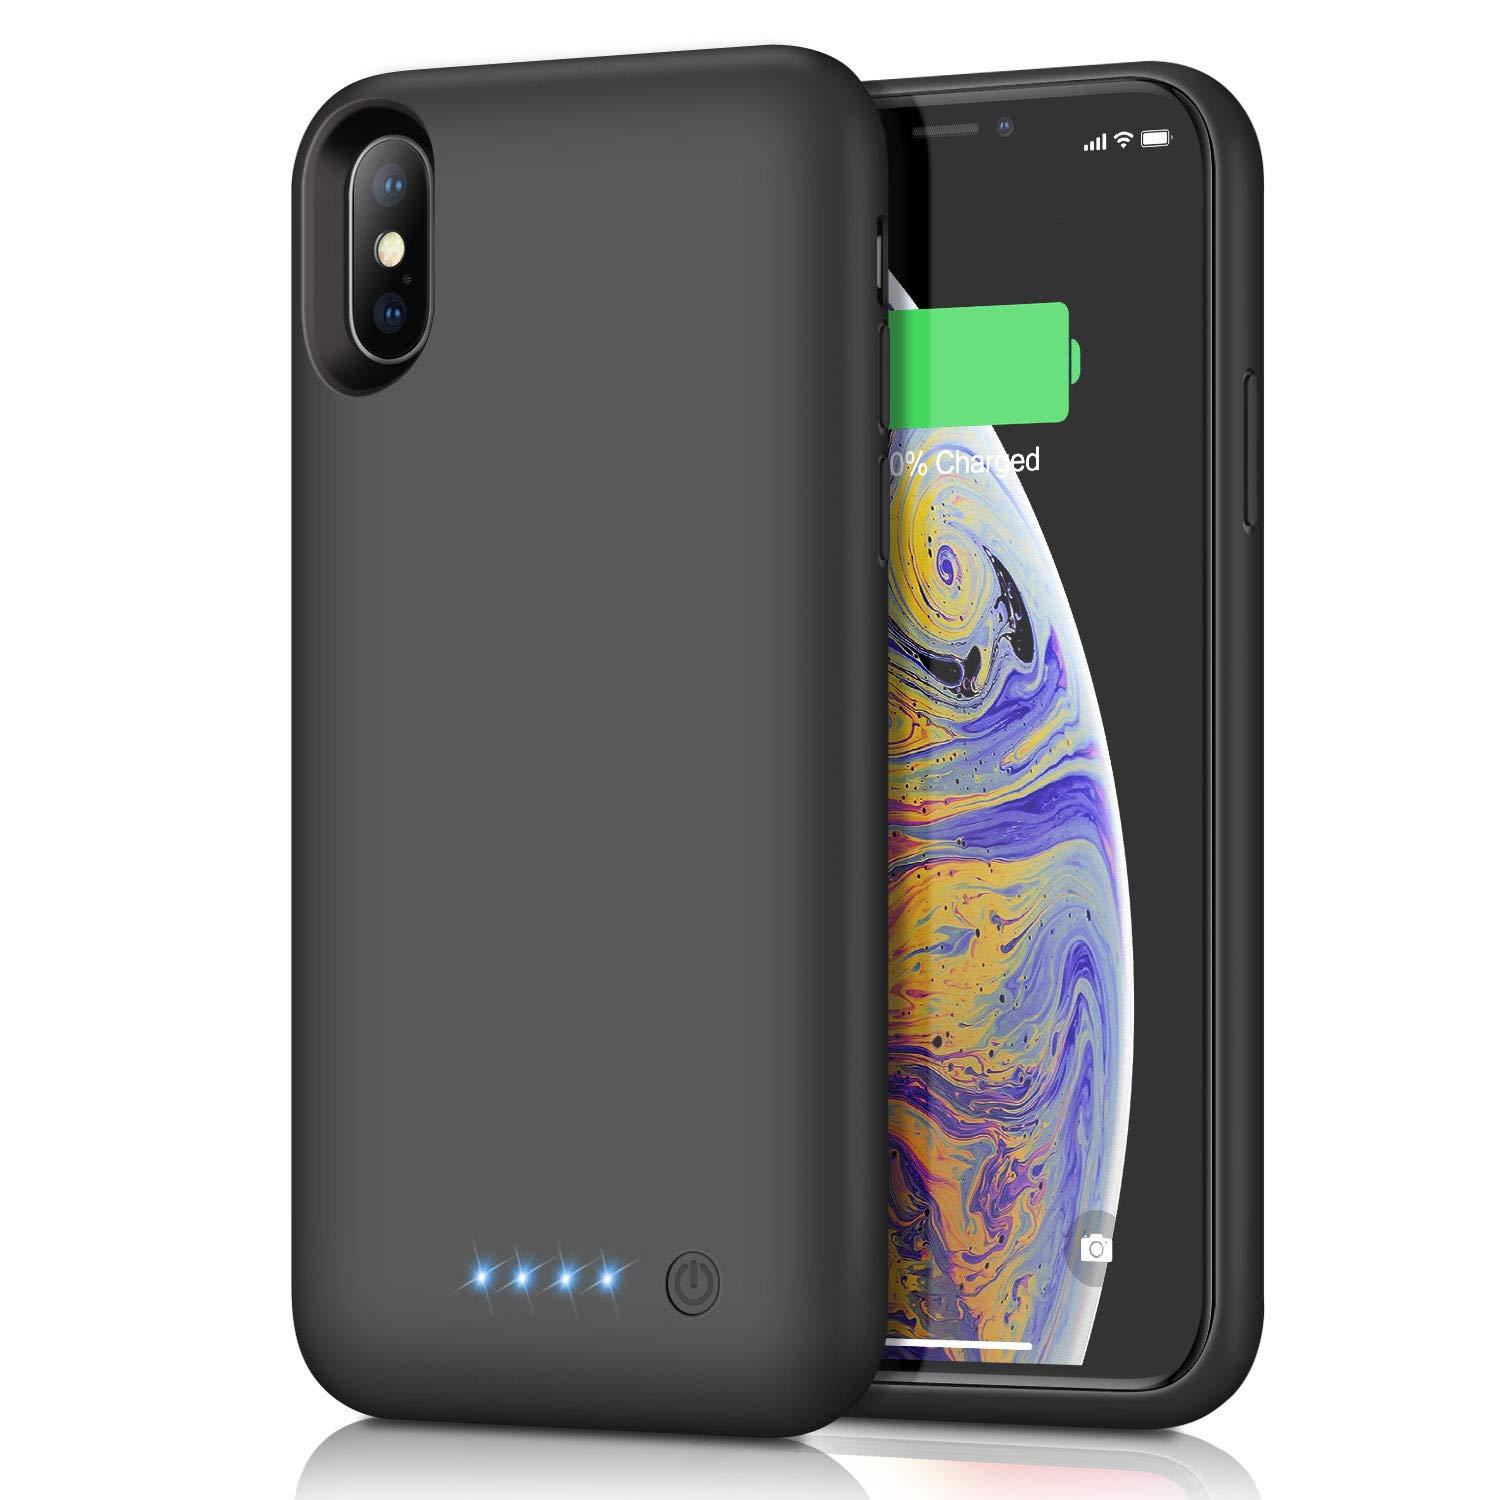 Xooparc Battery case for iPhone X/XS, [6500mah] Upgraded Charging Case Protective Portable Charger Case Rechargeable Extended Battery Pack for Apple iPhone X/XS(5.8') Backup Power Bank Cover (Black) by Xooparc